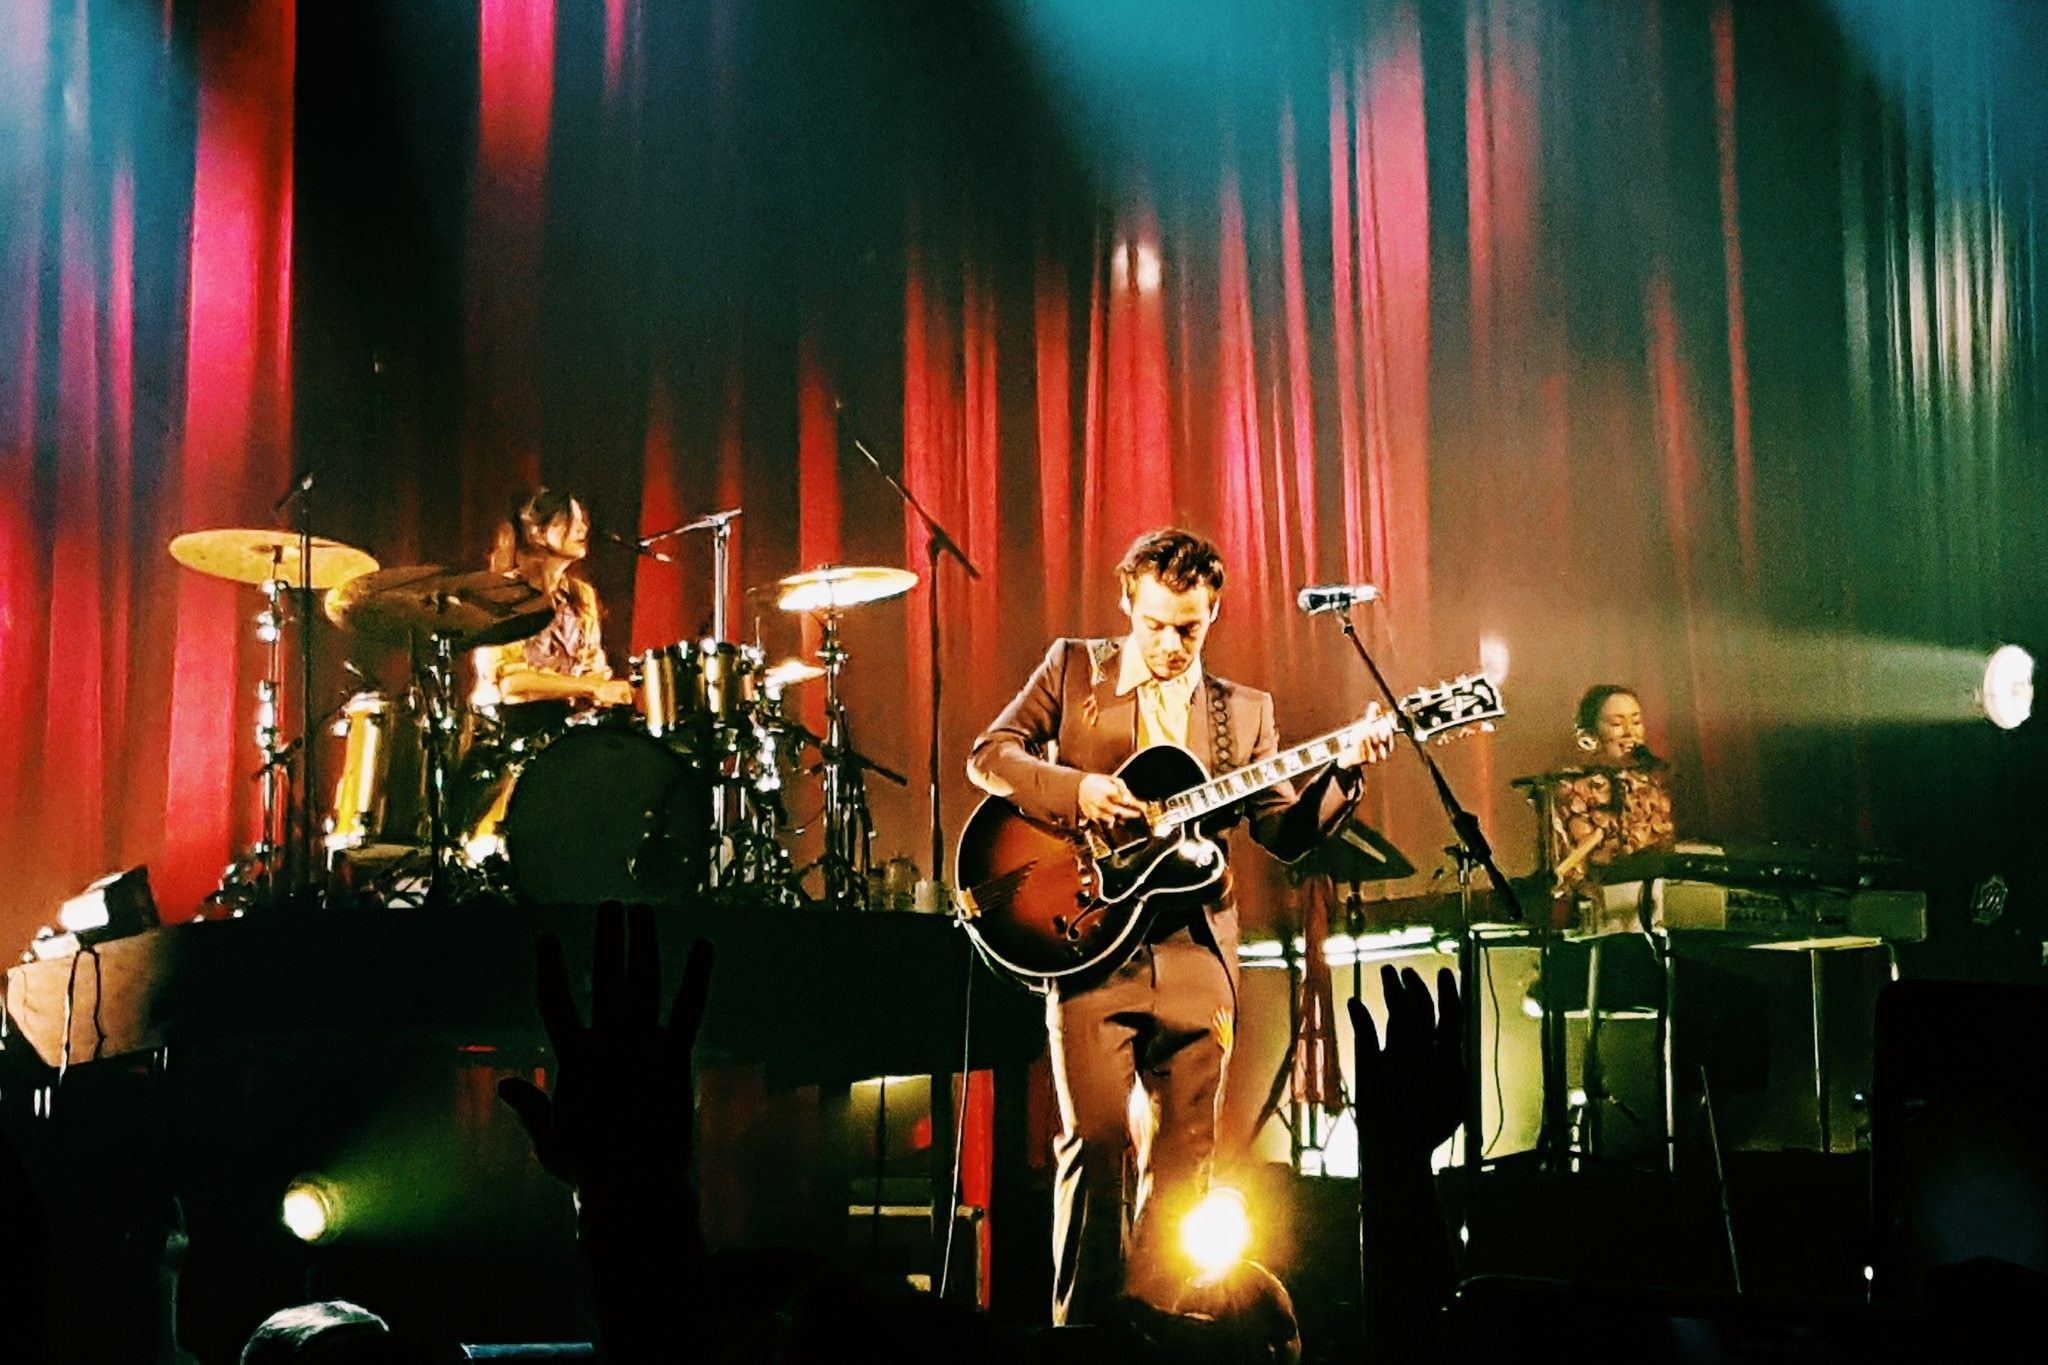 Harry Styles Live On Tour Cologne Germany Harry Styles Live Harry Harry Styles